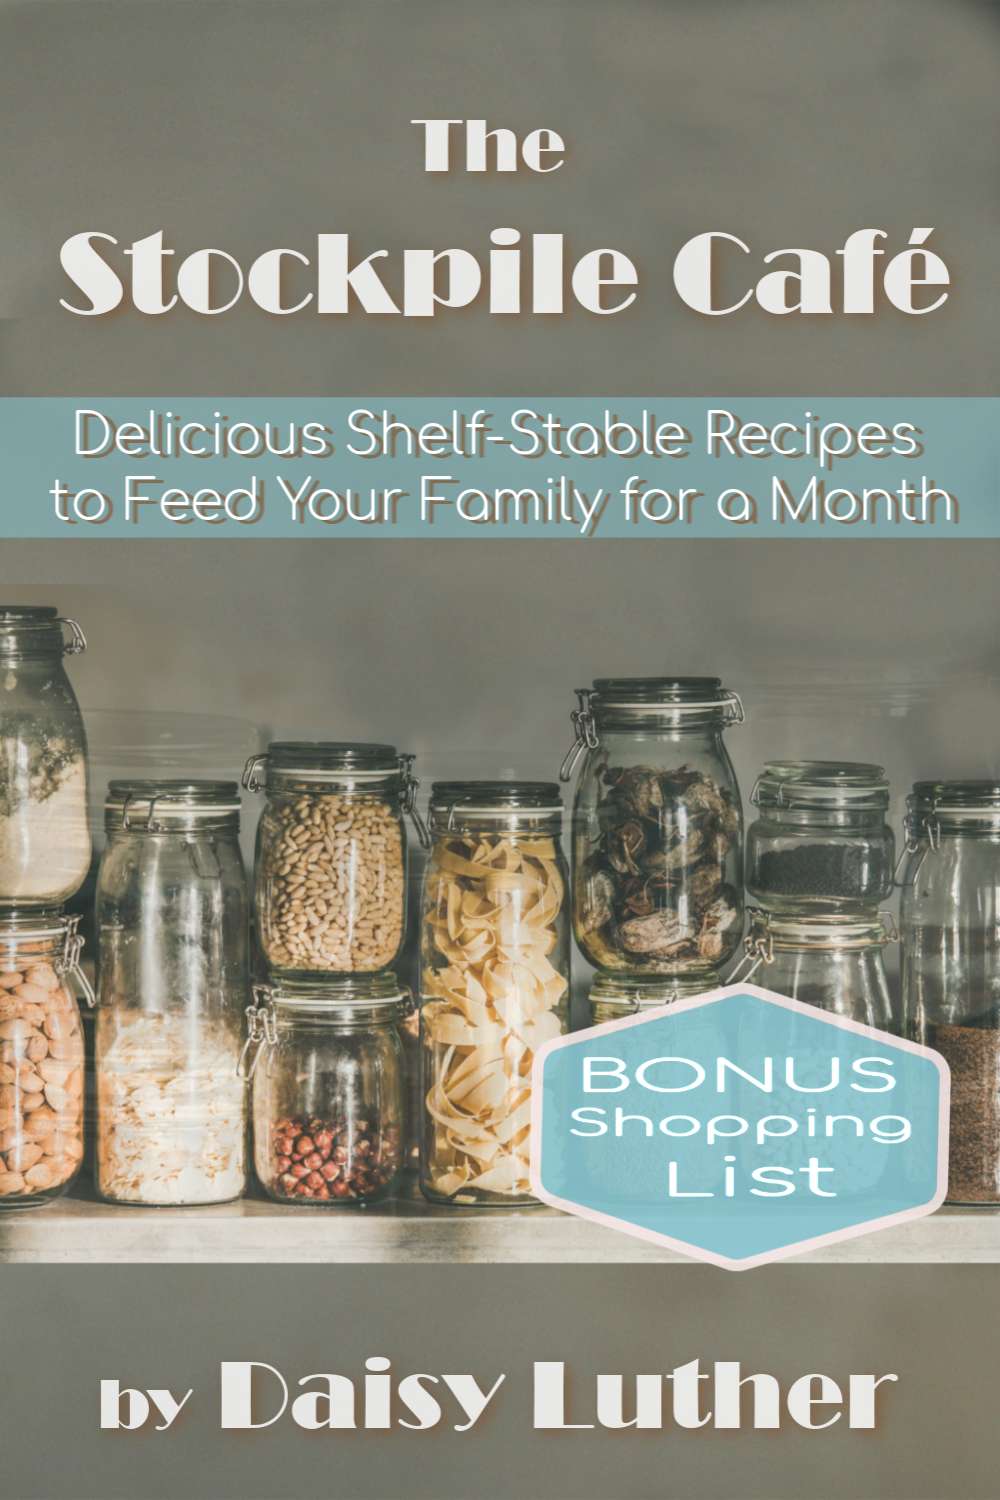 How to Feed a Family for a Month from Your Stockpile